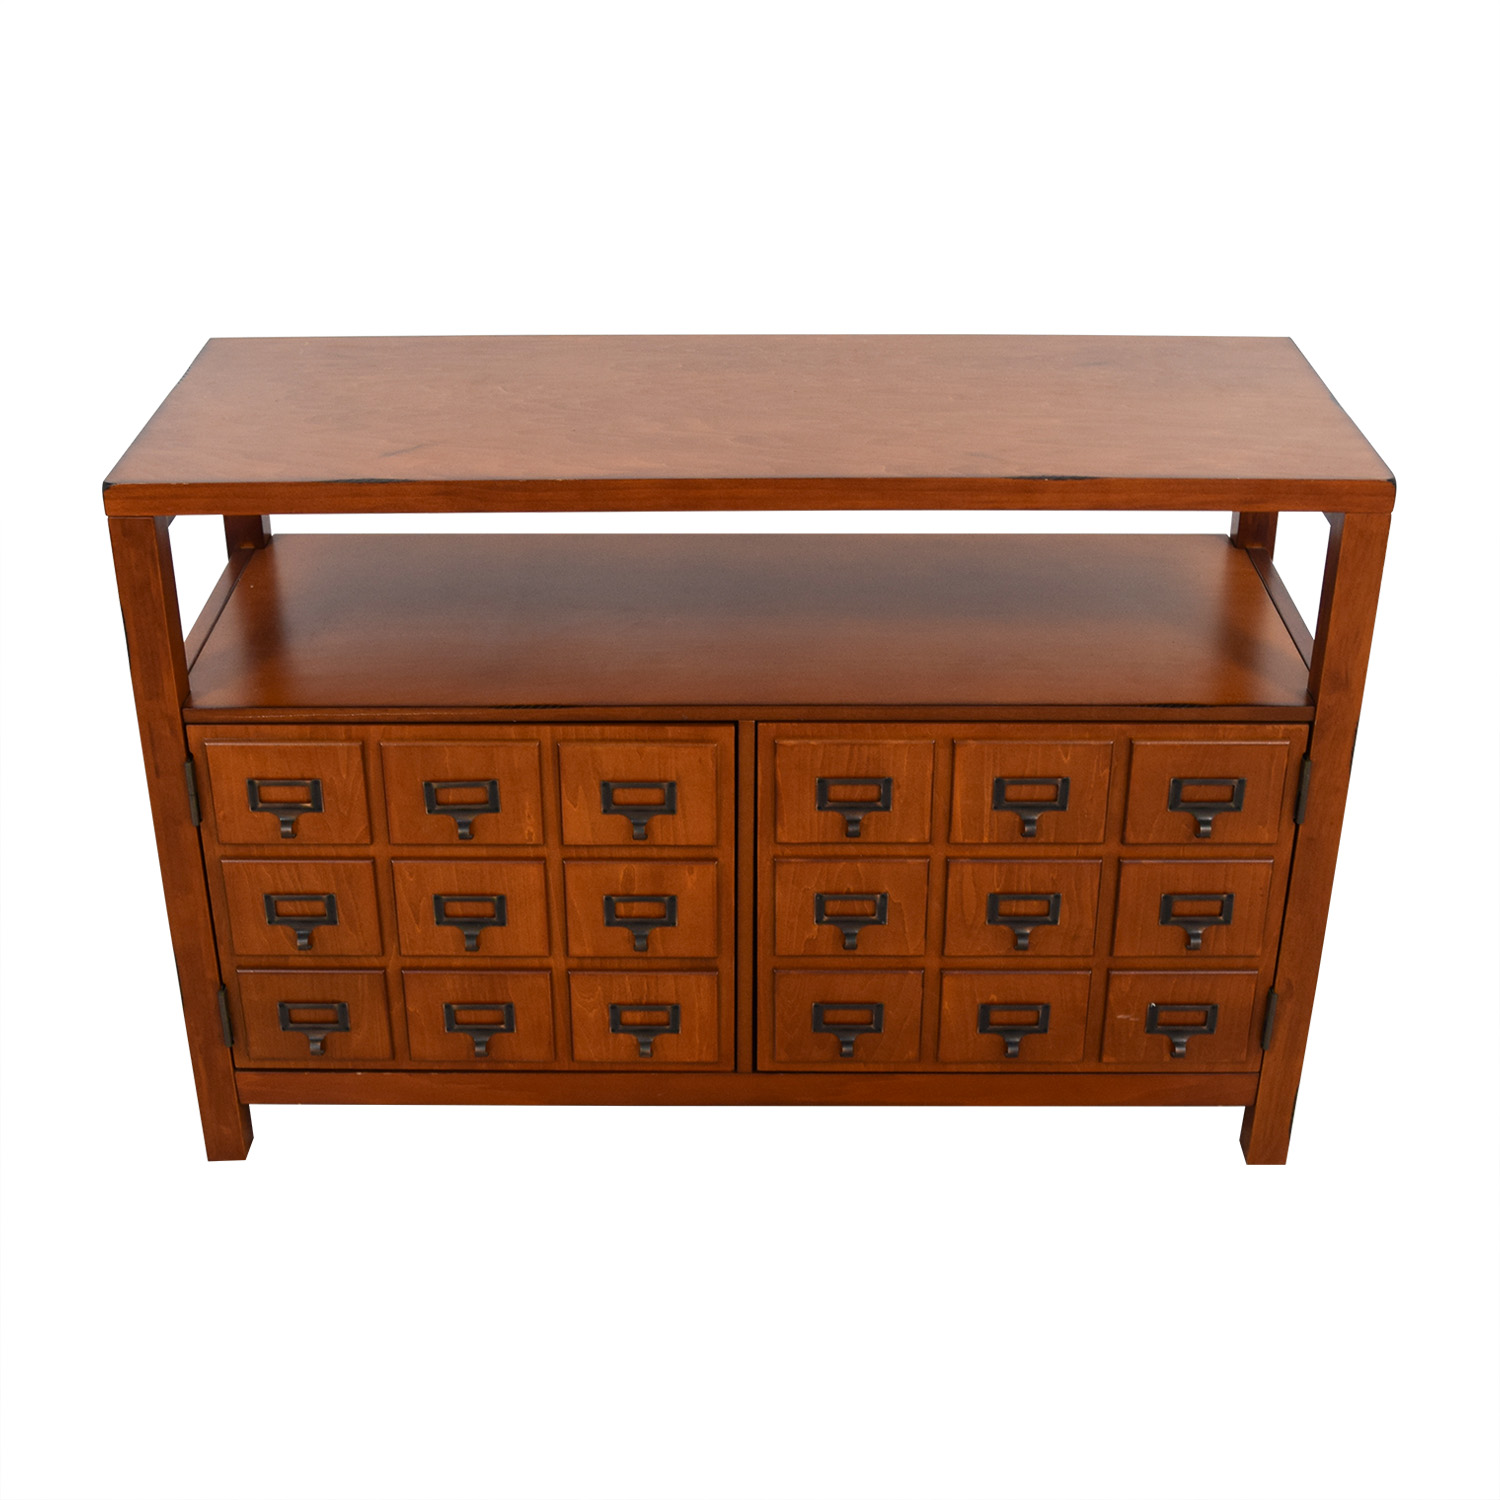 Wood TV Cabinet with Shelves / Media Units